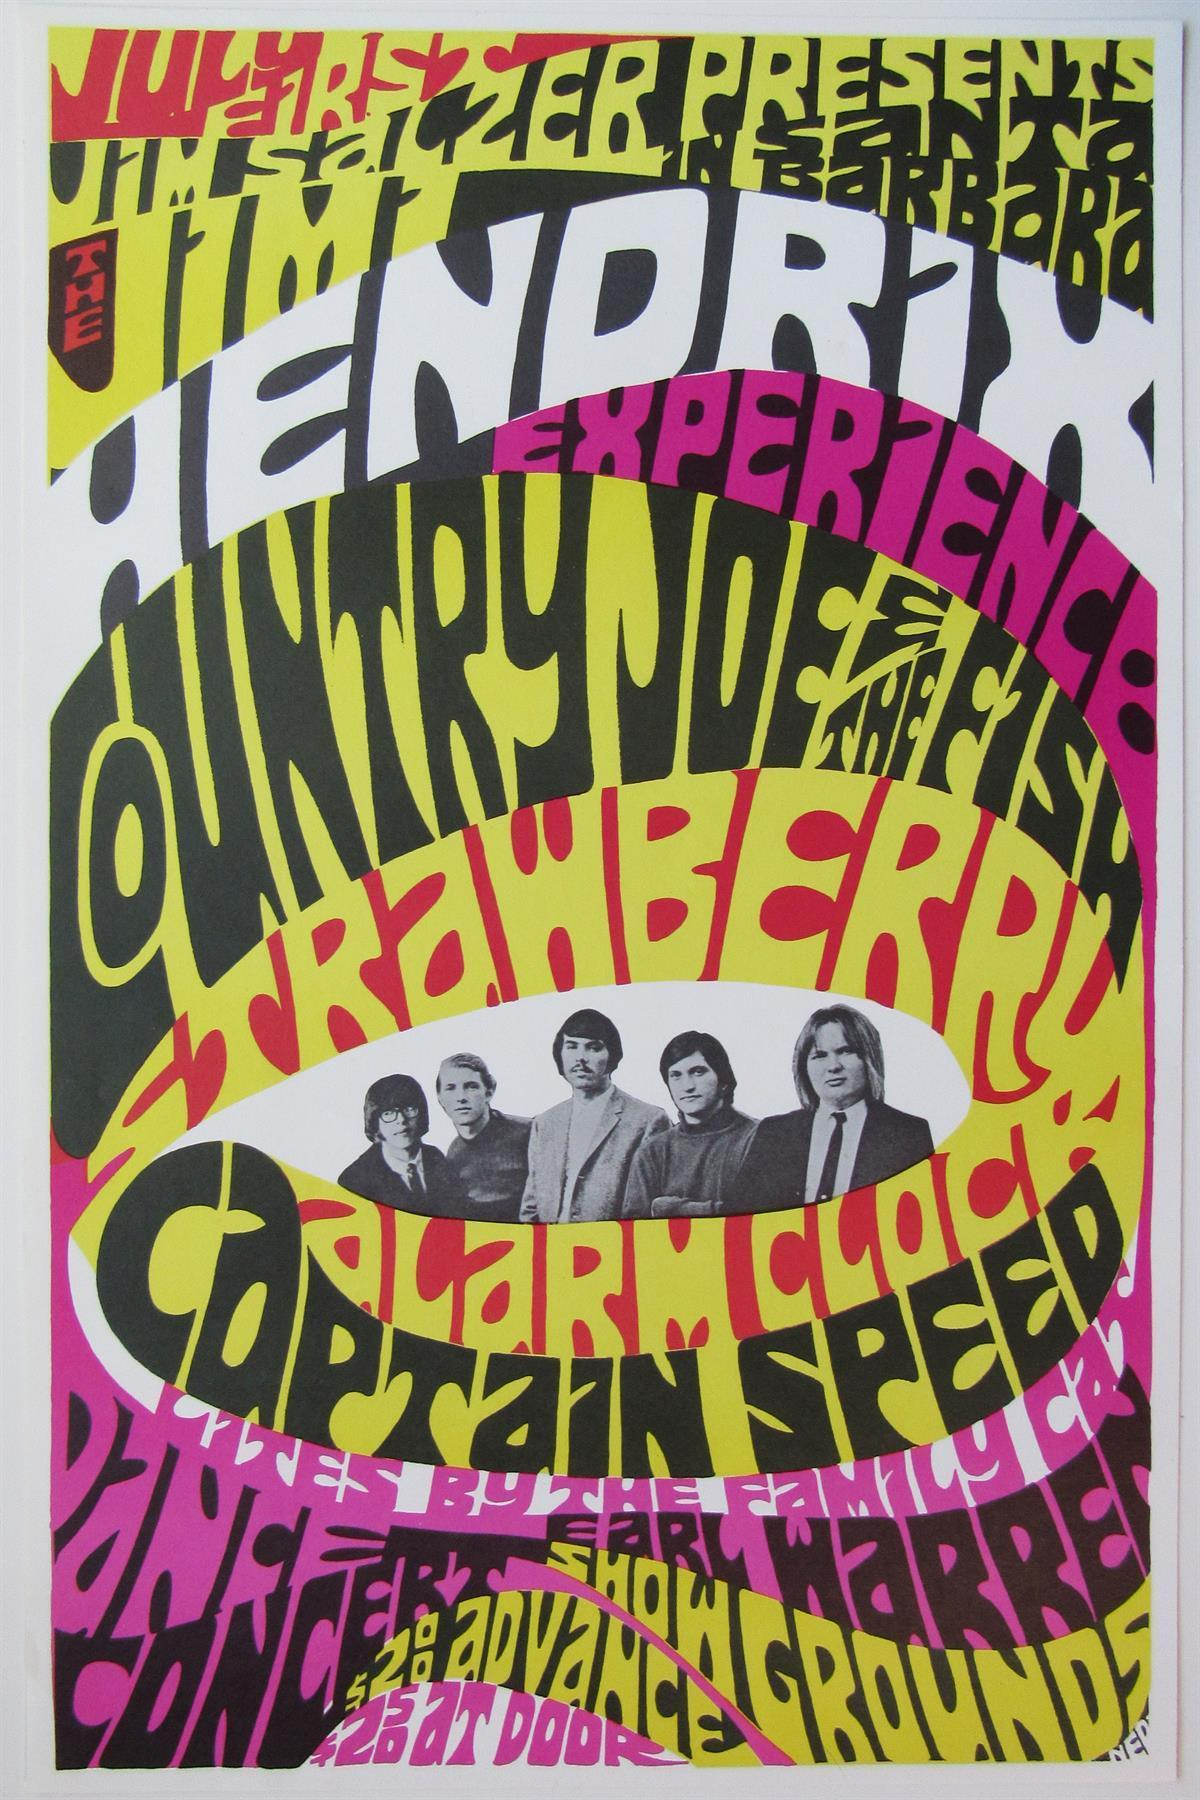 Jimi Hendrix / Strawberry Alarm Clock